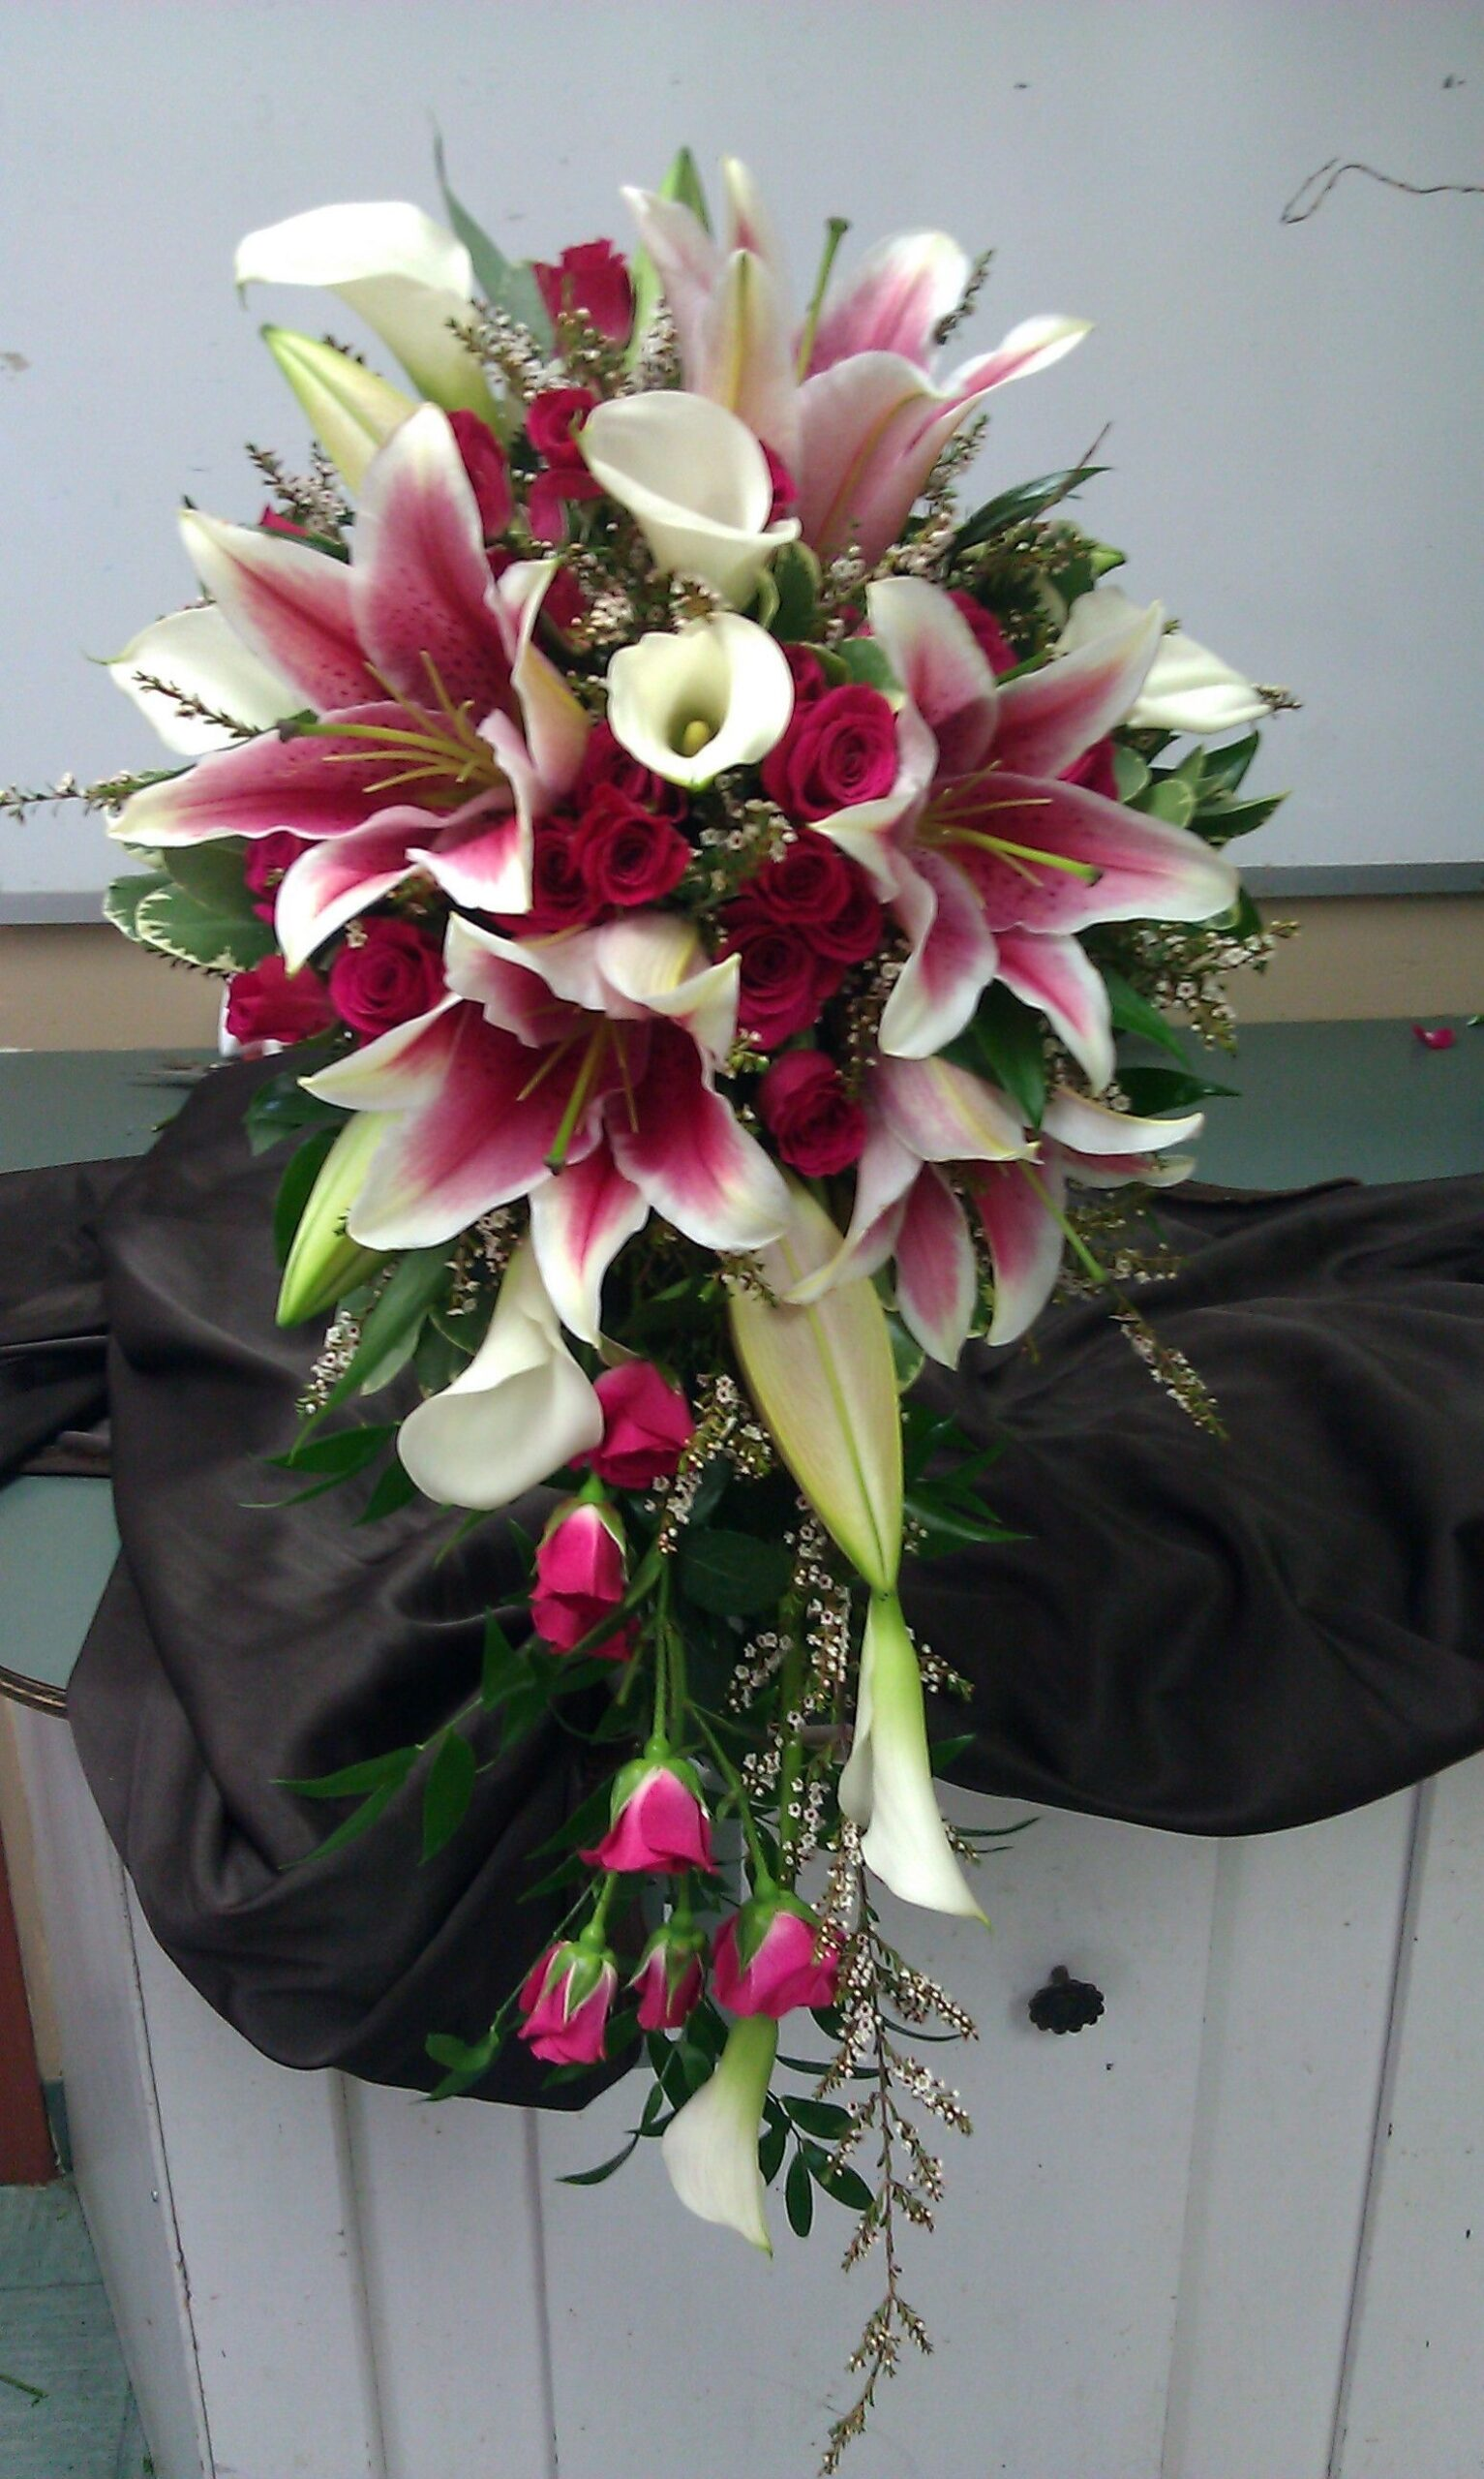 ideas for you to choose lilies wedding bouquet 1 1 scaled - Choose Artificial Hand-tied Wedding Bouquet for the Wedding